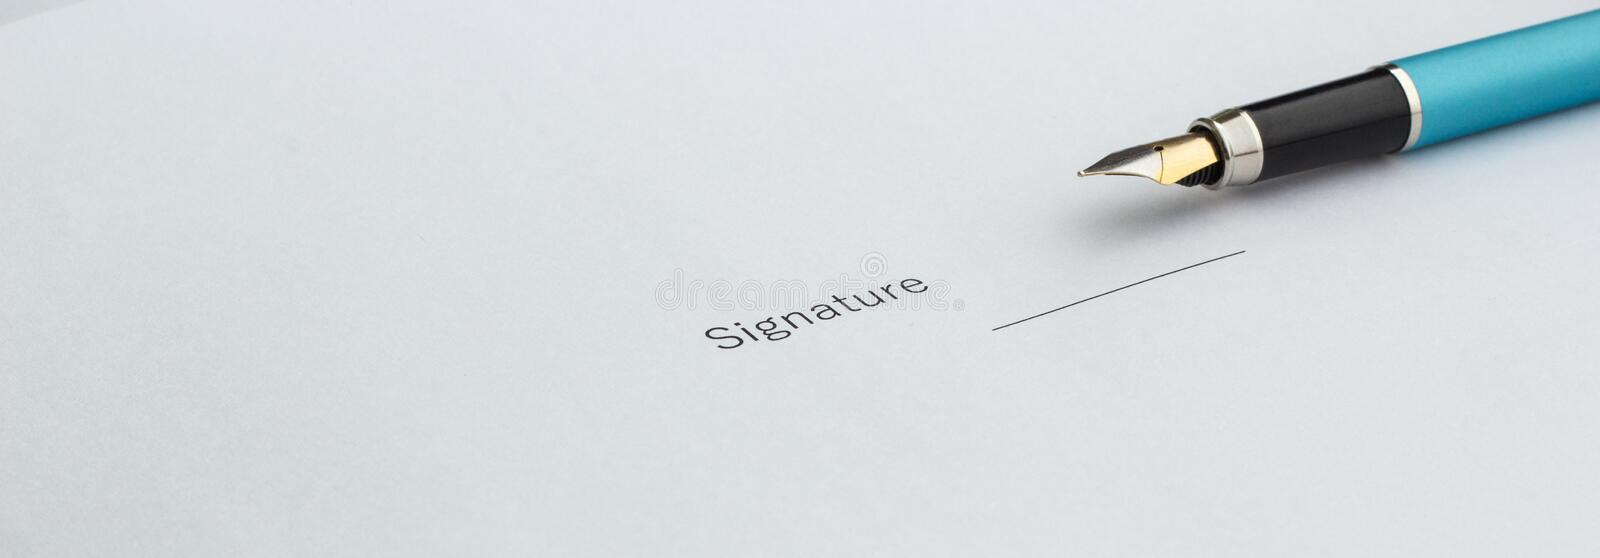 Pen for signing an important document, close-up royalty free stock images